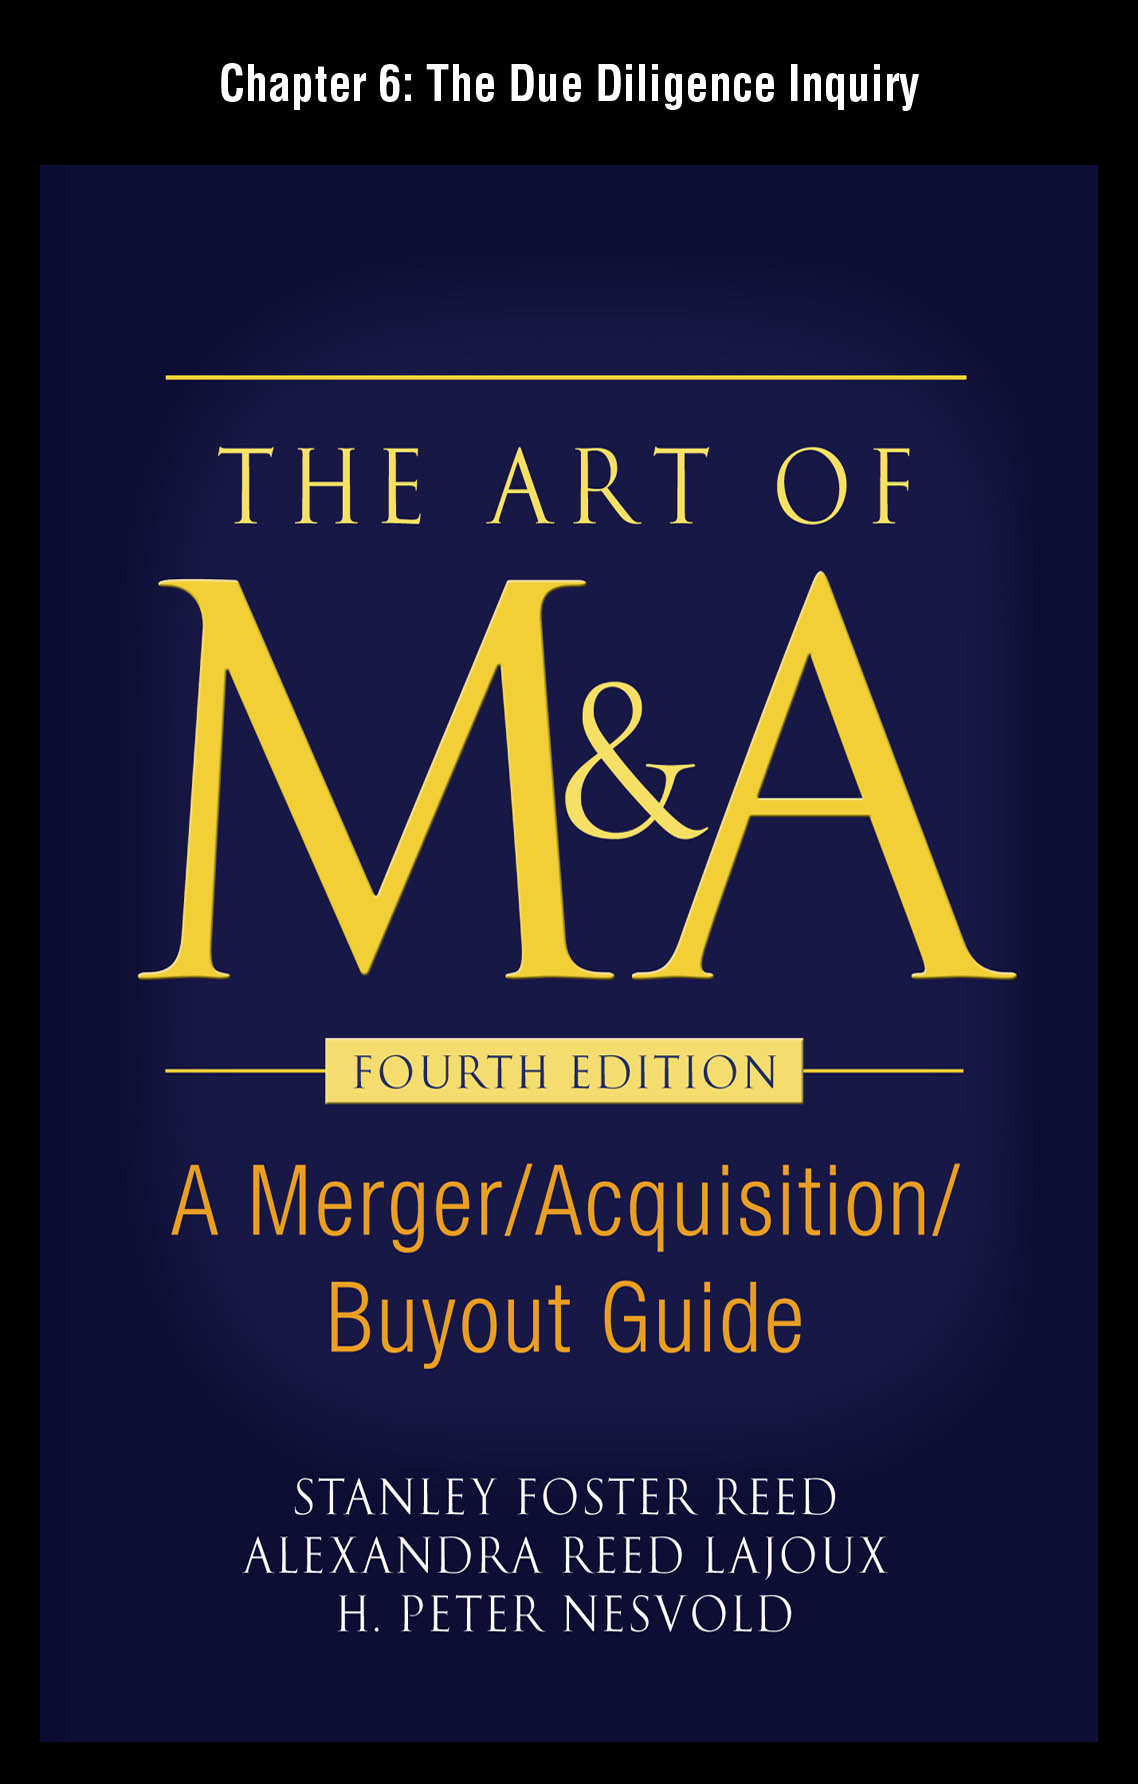 The Art of M&A, Fourth Edition, Chapter 6 - The Due Diligence Inquiry